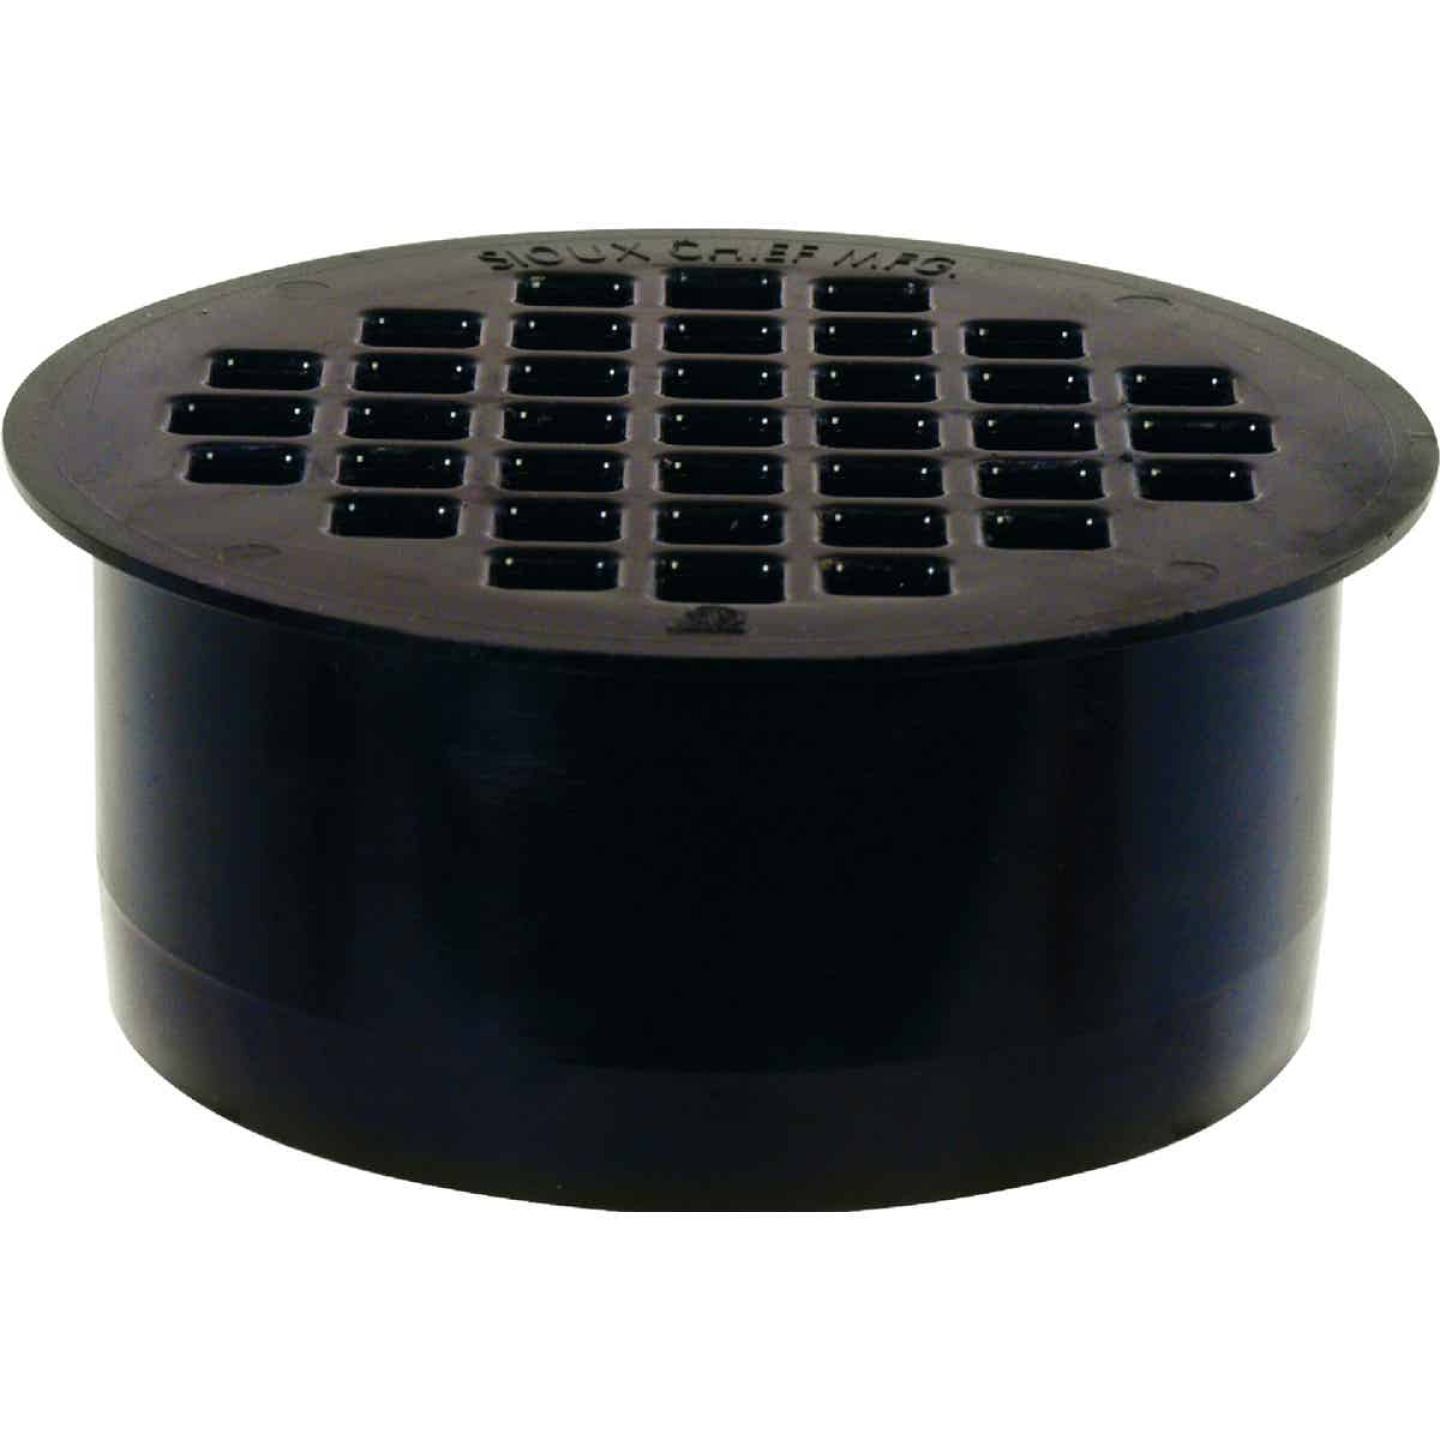 Sioux Chief 3 In. ABS Floor Drain Image 1